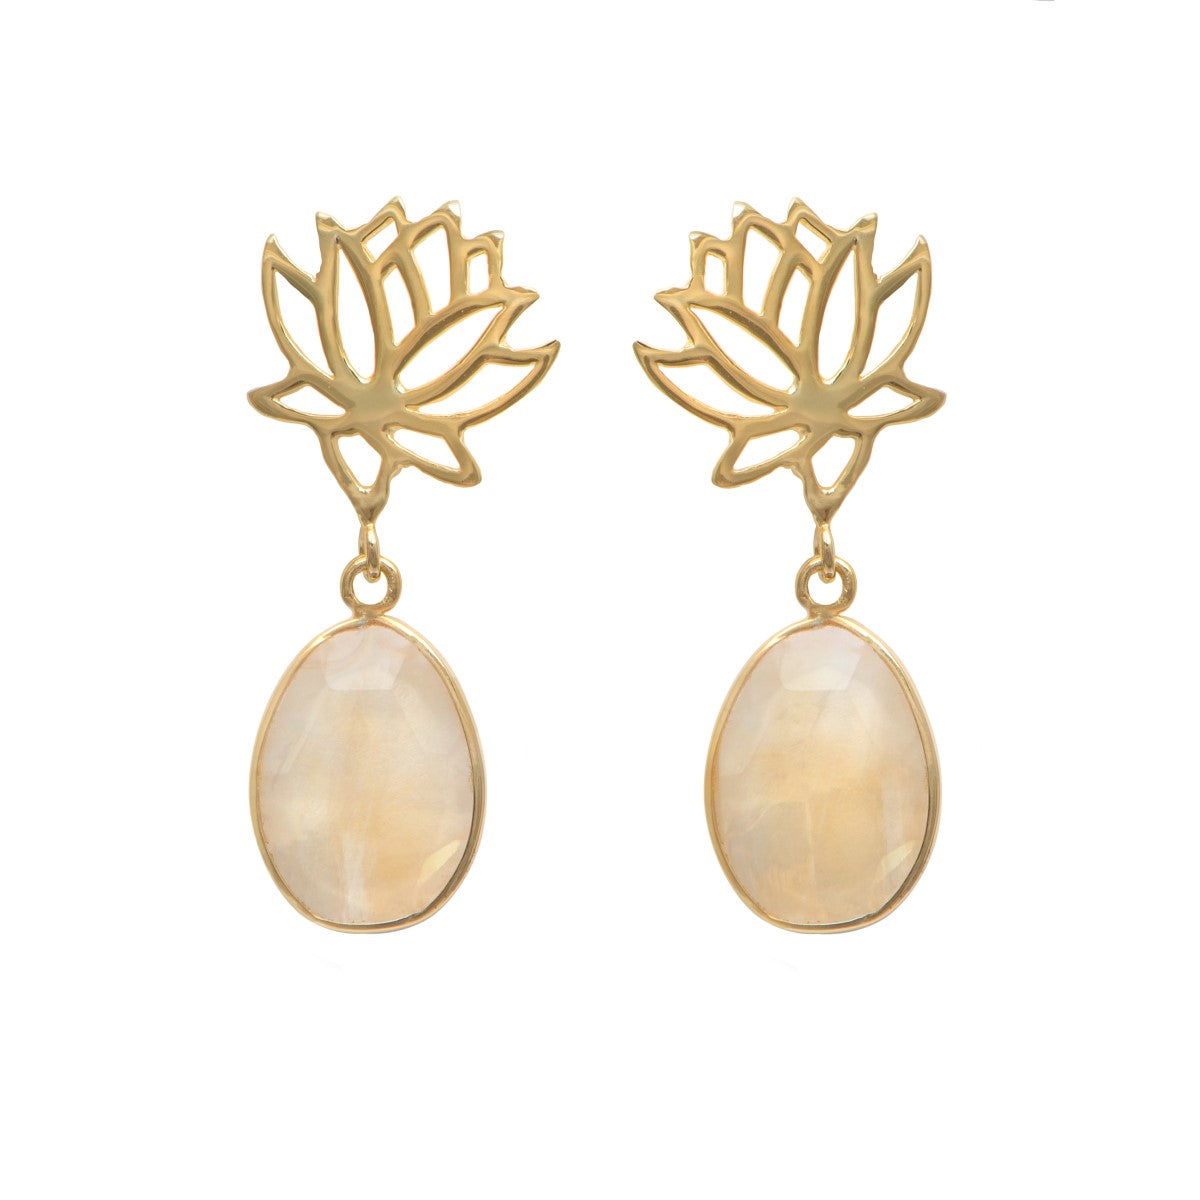 Lotus Earrings in Gold Plated Sterling Silver with a Citrine Gemstone Drop